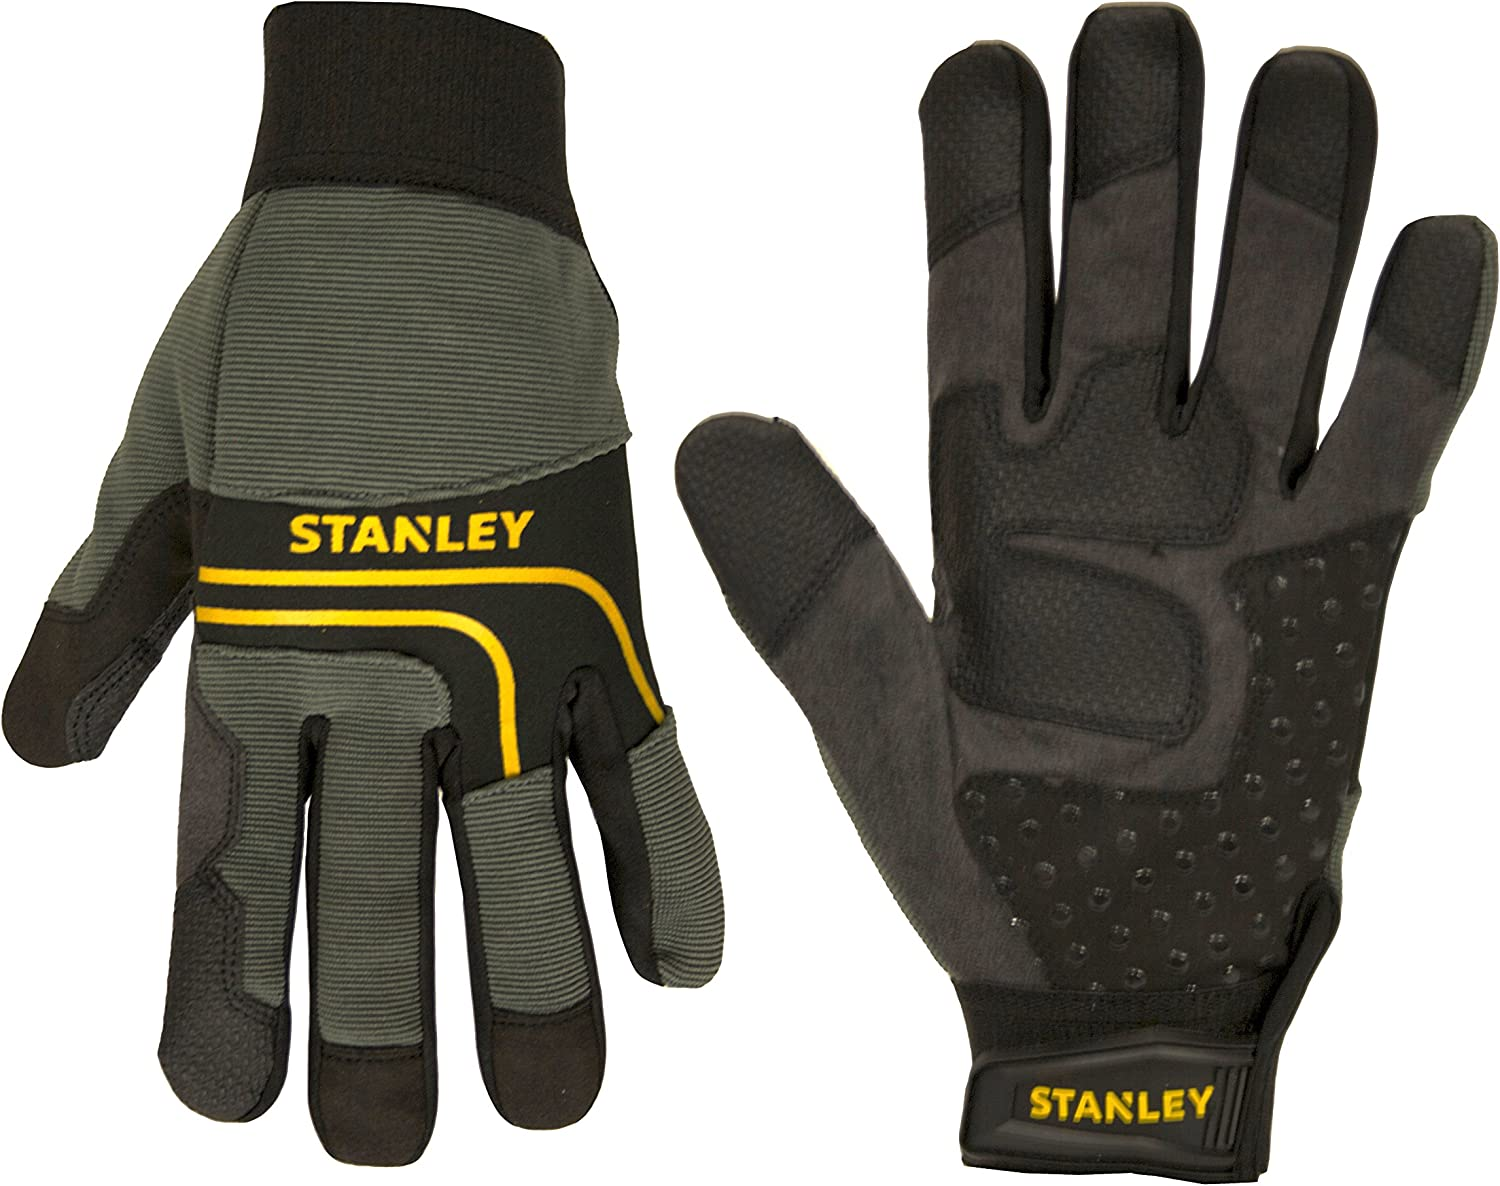 Stanley Synthetic Leather Multi Purpose Work Gloves With Silicone Dotting And Pvc Reinforcements Medium Black Amazon Com